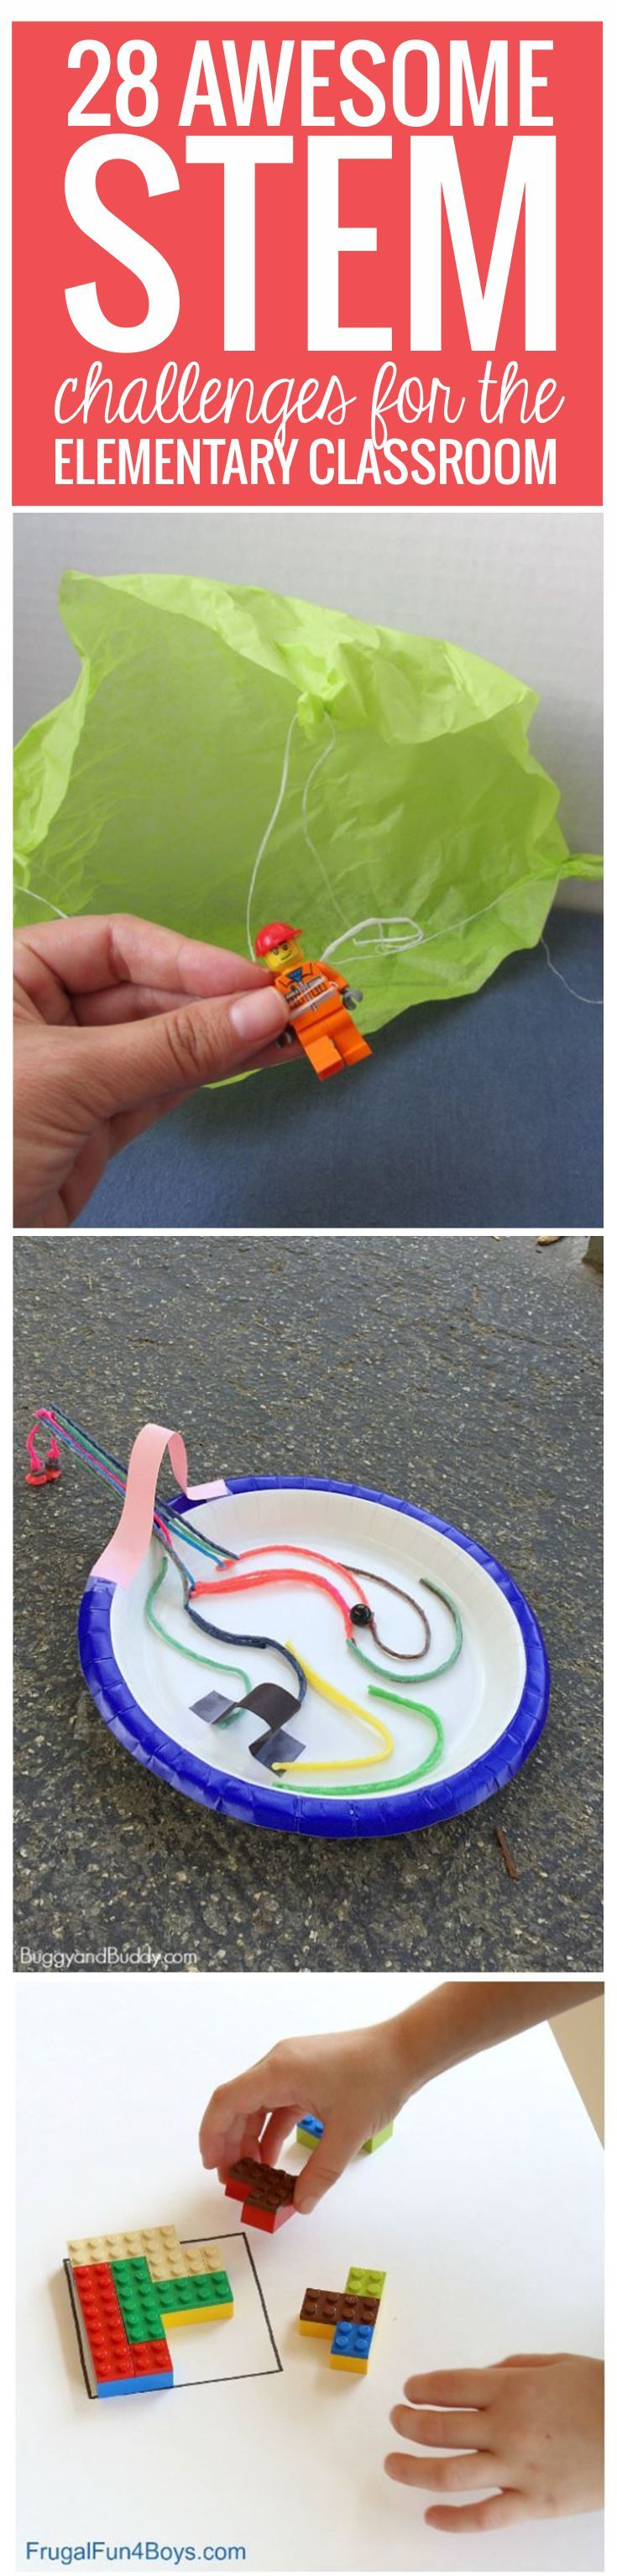 318 best STEM and STEAM images on Pinterest | Science experiments ...